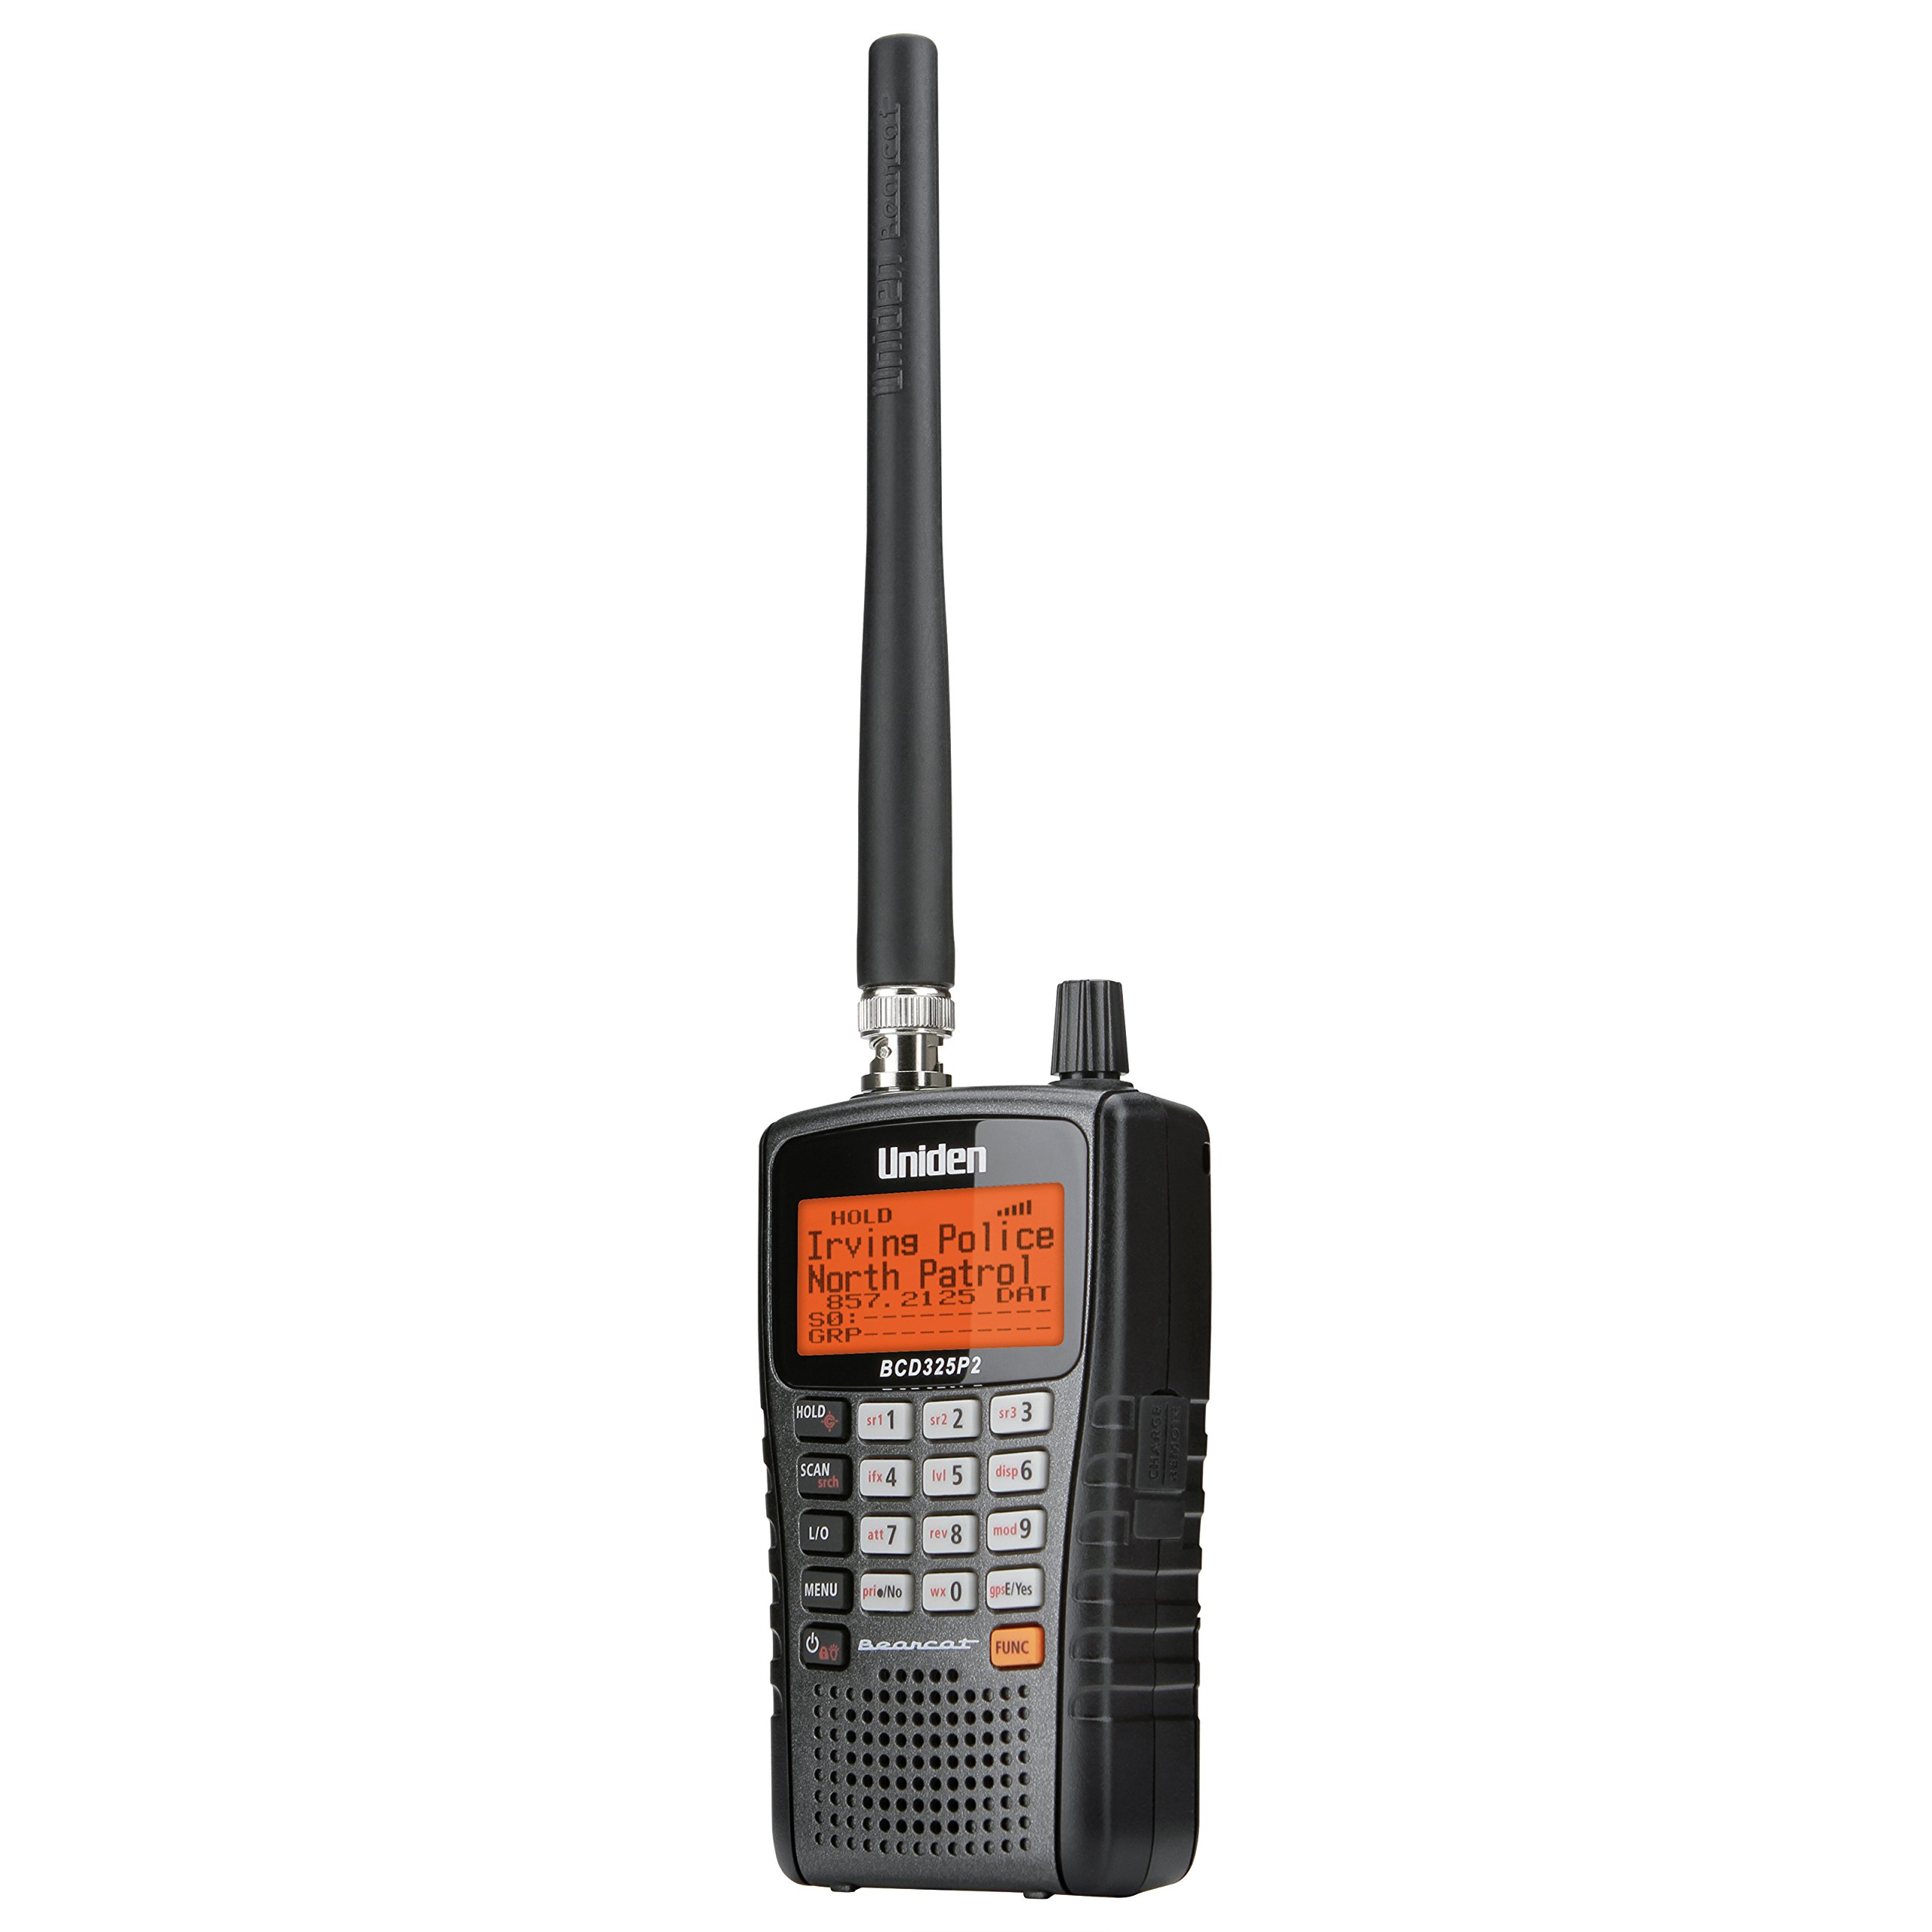 Uniden BCD325P2 Handheld TrunkTracker V Scanner. 25,000 Dynamically Allocated Channels. Close Call RF Capture Technology. Location-Based Scanning and S.A.M.E. Weather Alert. Compact Size. by Uniden (Image #2)